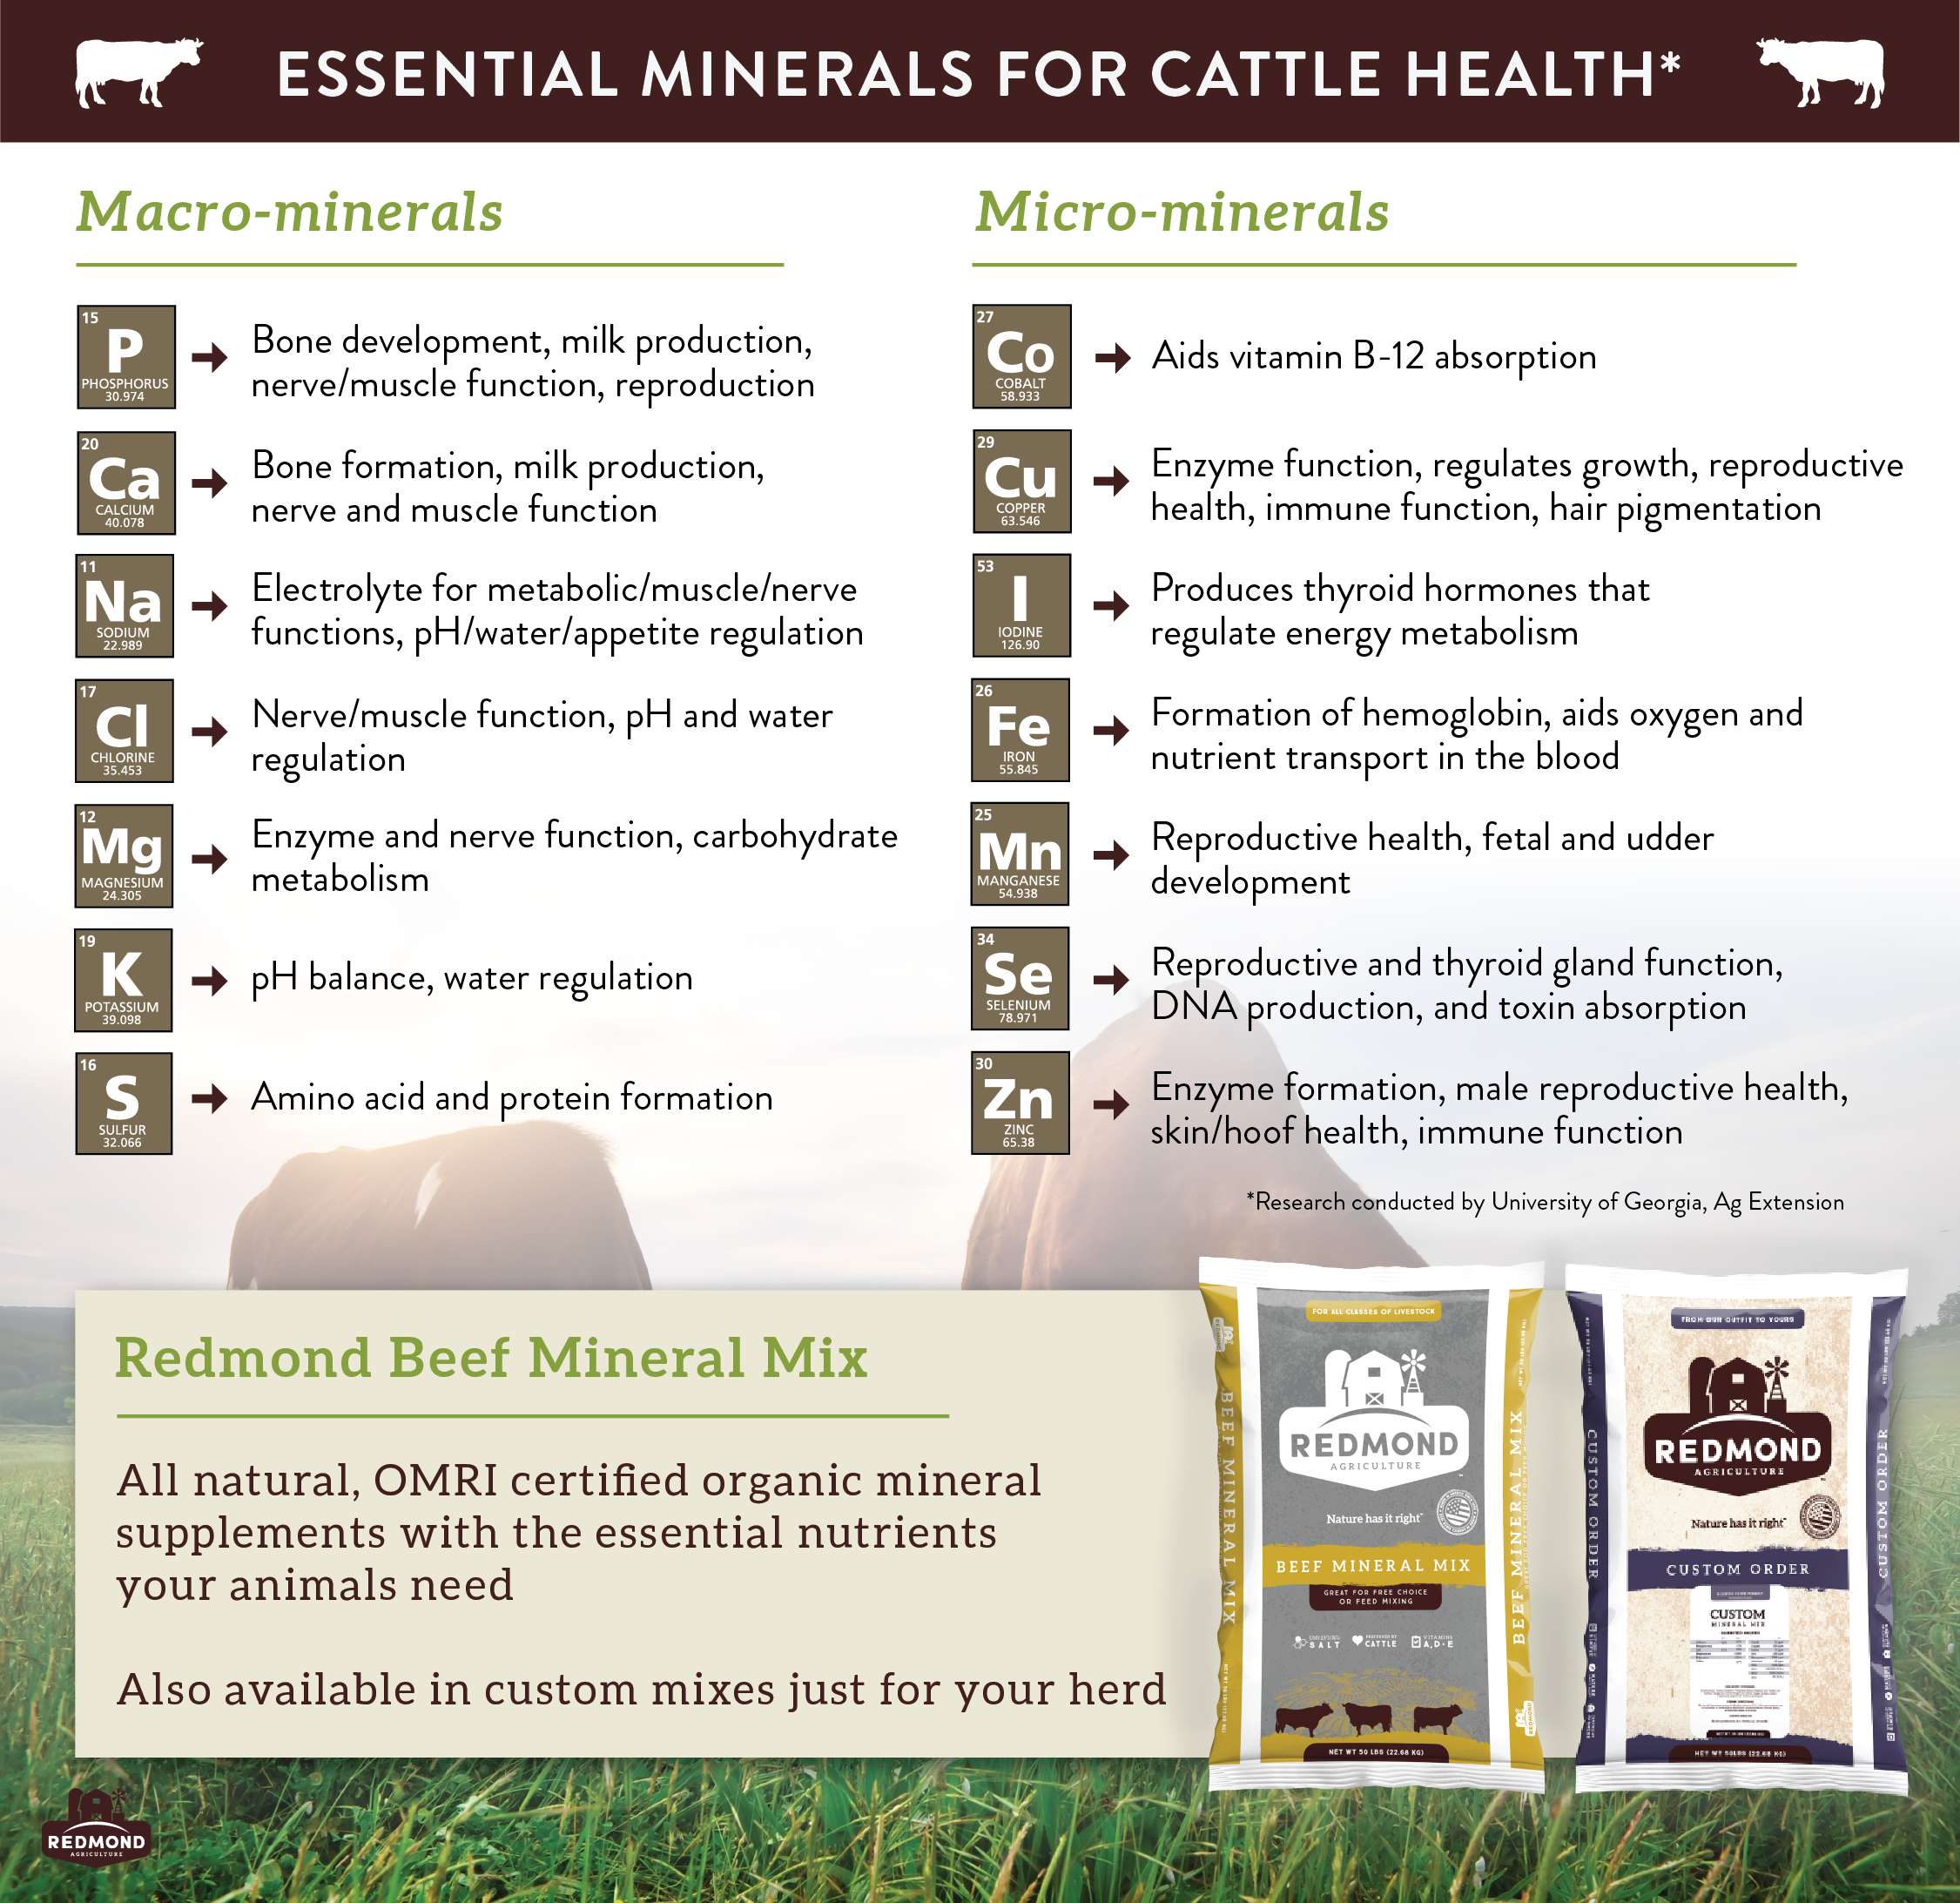 Essential macrominerals and microminerals for cattle health